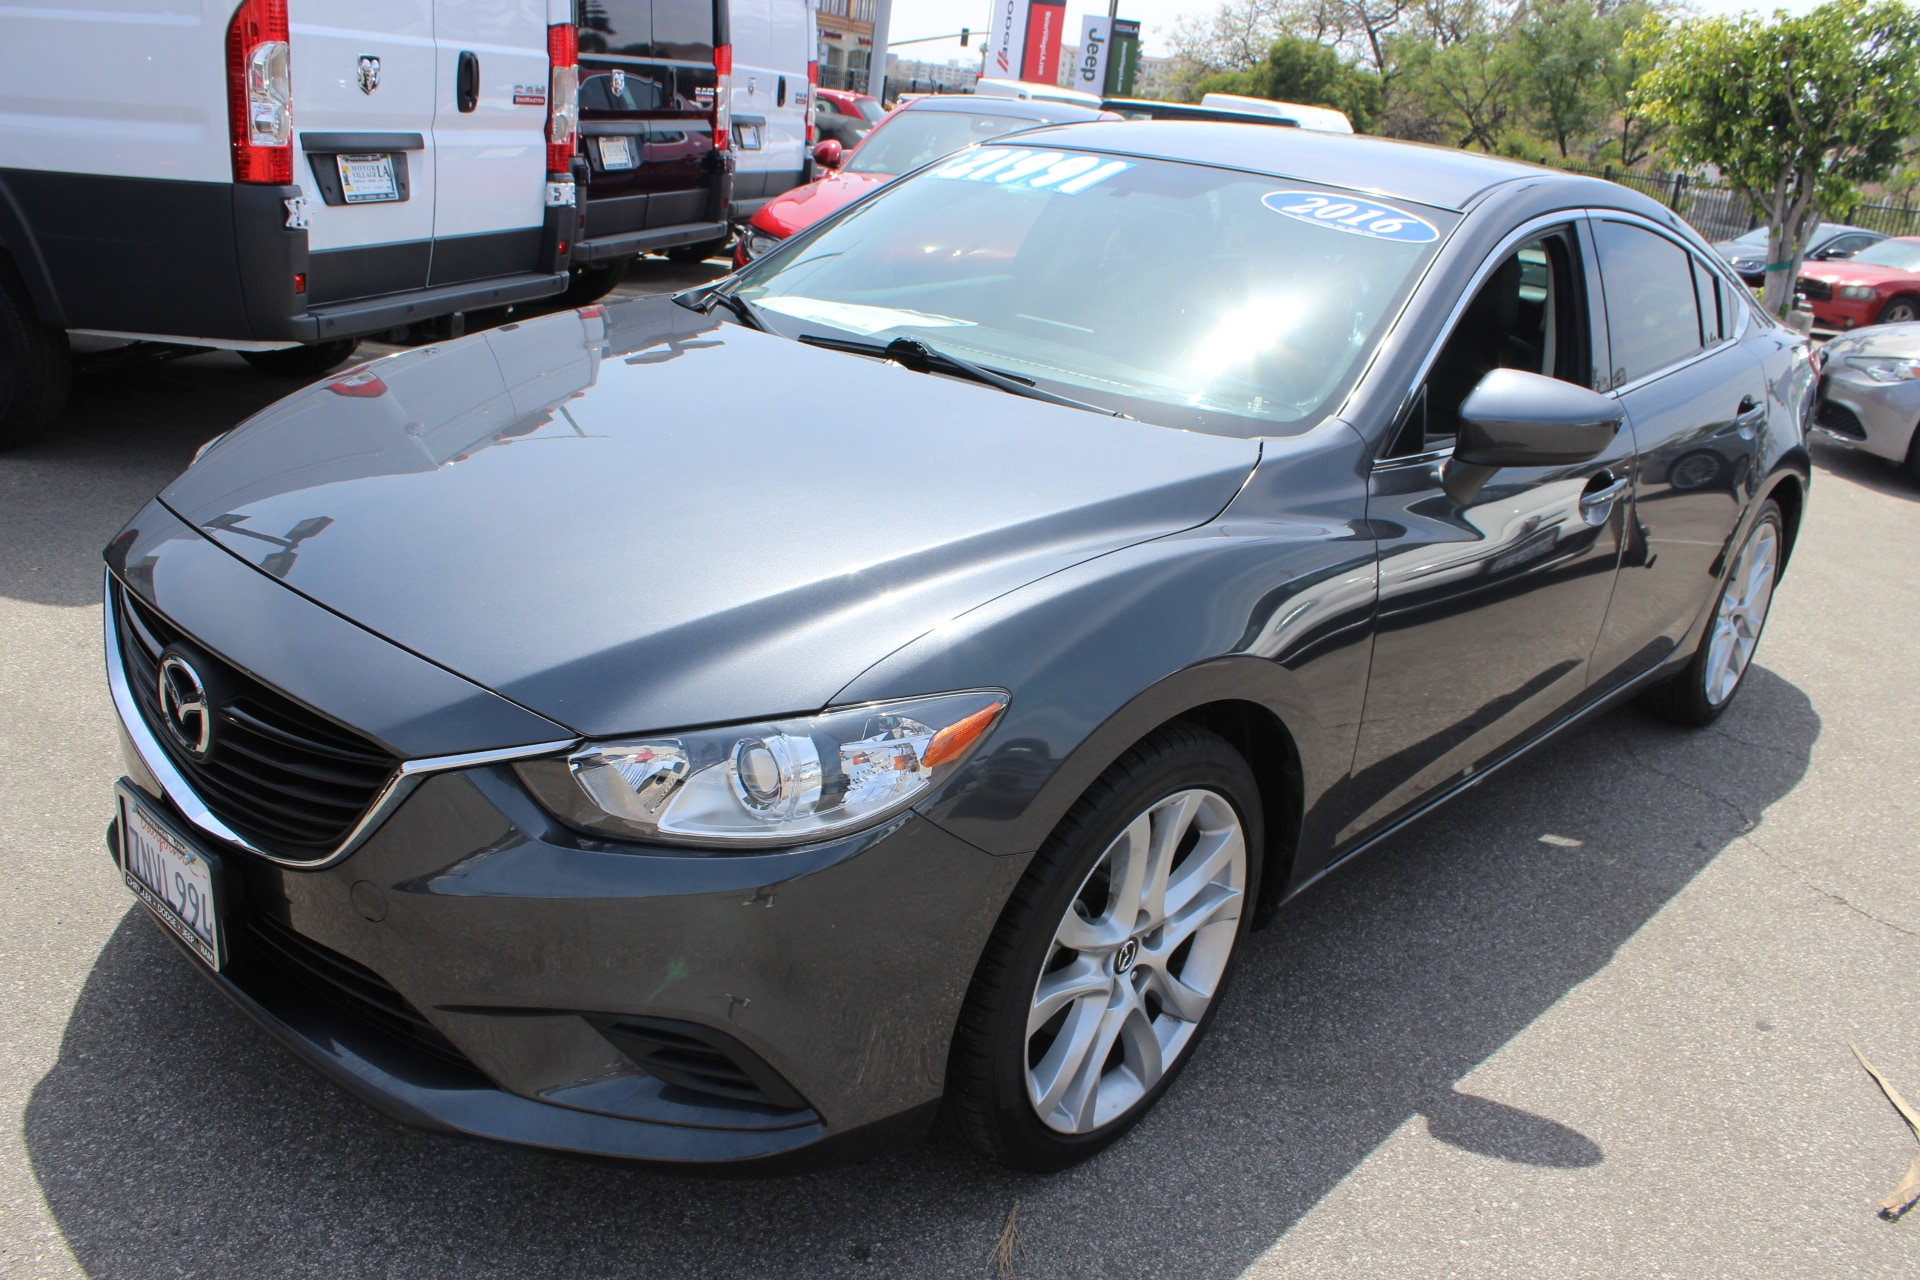 2016 Mazda Mazda6 i Touring Motor Village LA is pleased to be currently offering this 2016 Mazda